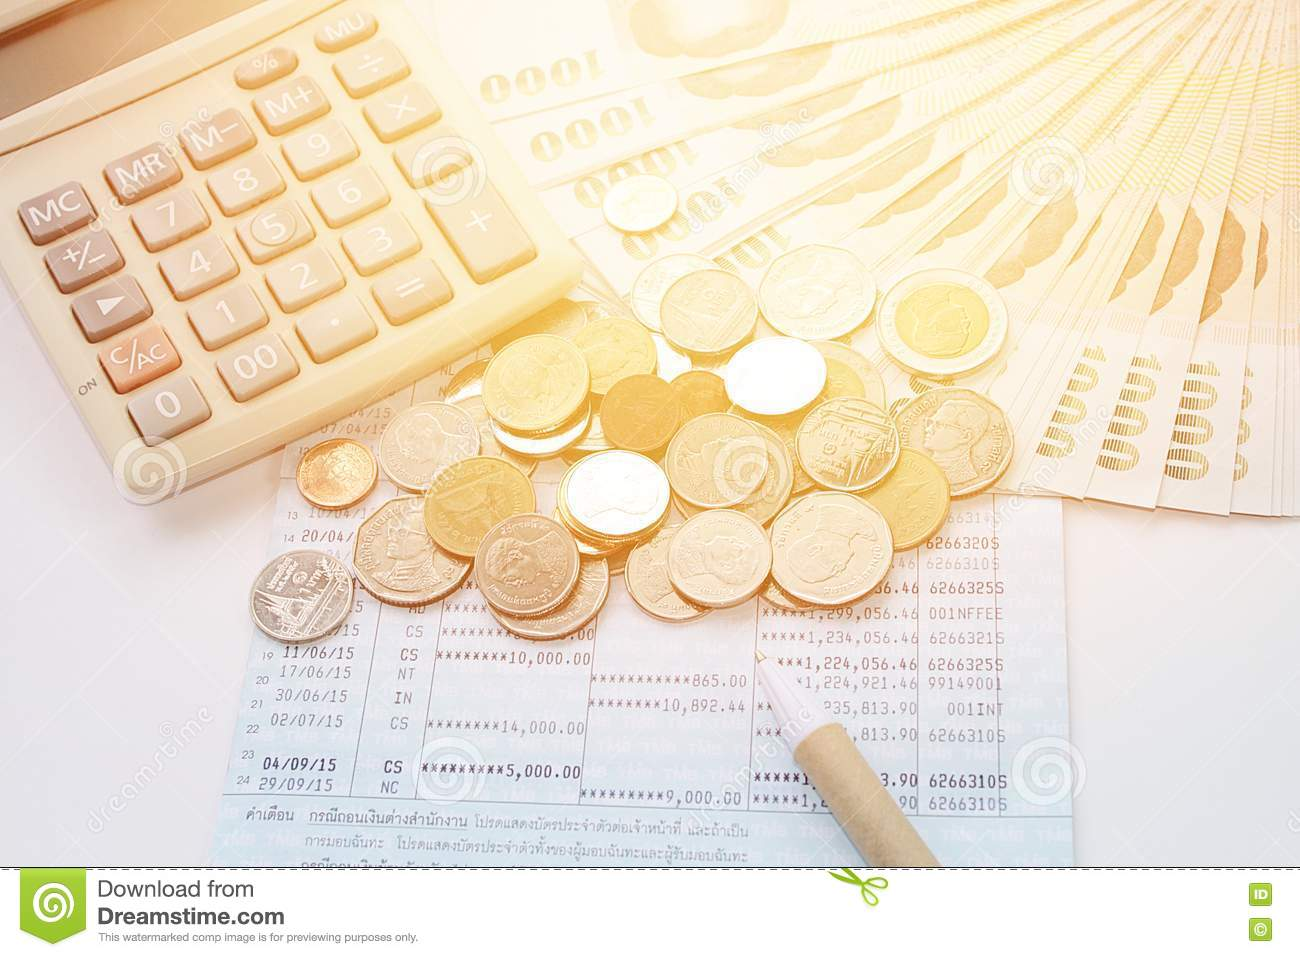 Coins, Thai Money, Pen, Calculator And Savings Account Passbook On White  Background Stock